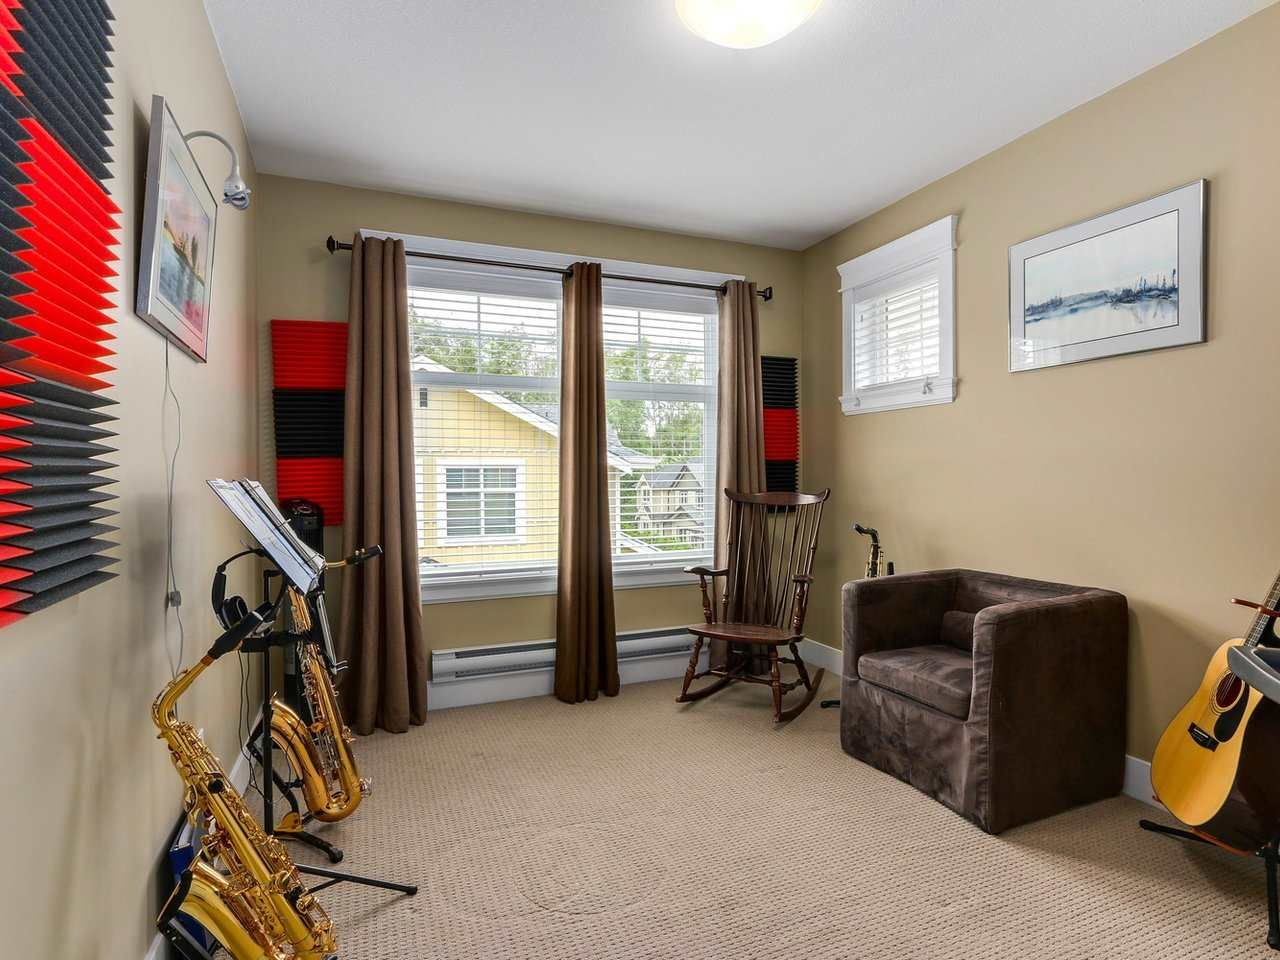 """Photo 13: Photos: 31 17171 2B Avenue in Surrey: Pacific Douglas Townhouse for sale in """"AUGUSTA TOWNHOUSES"""" (South Surrey White Rock)  : MLS®# R2280398"""